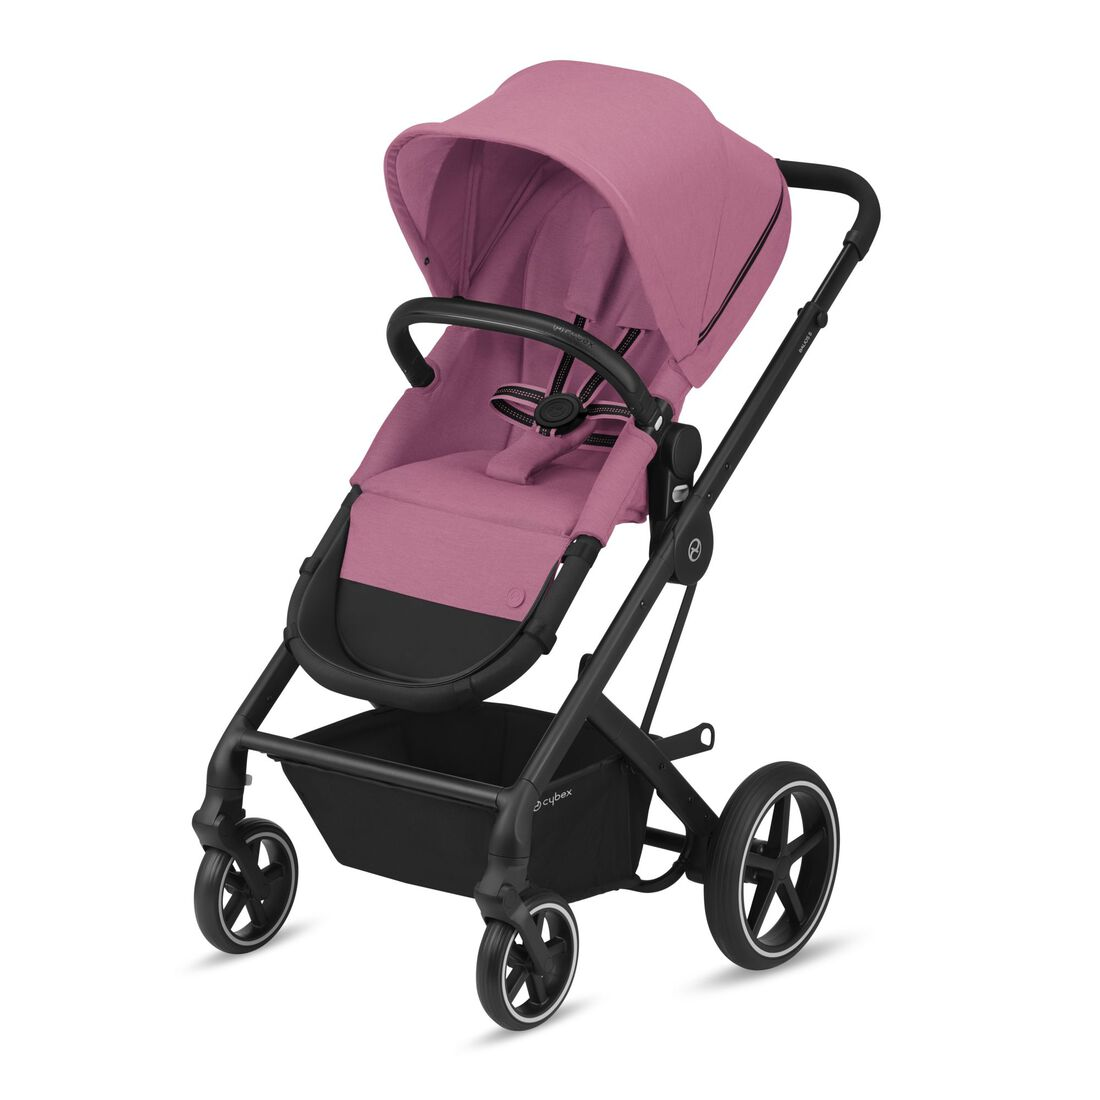 CYBEX Balios S 2-in-1 - Magnolia Pink in Magnolia Pink large image number 1